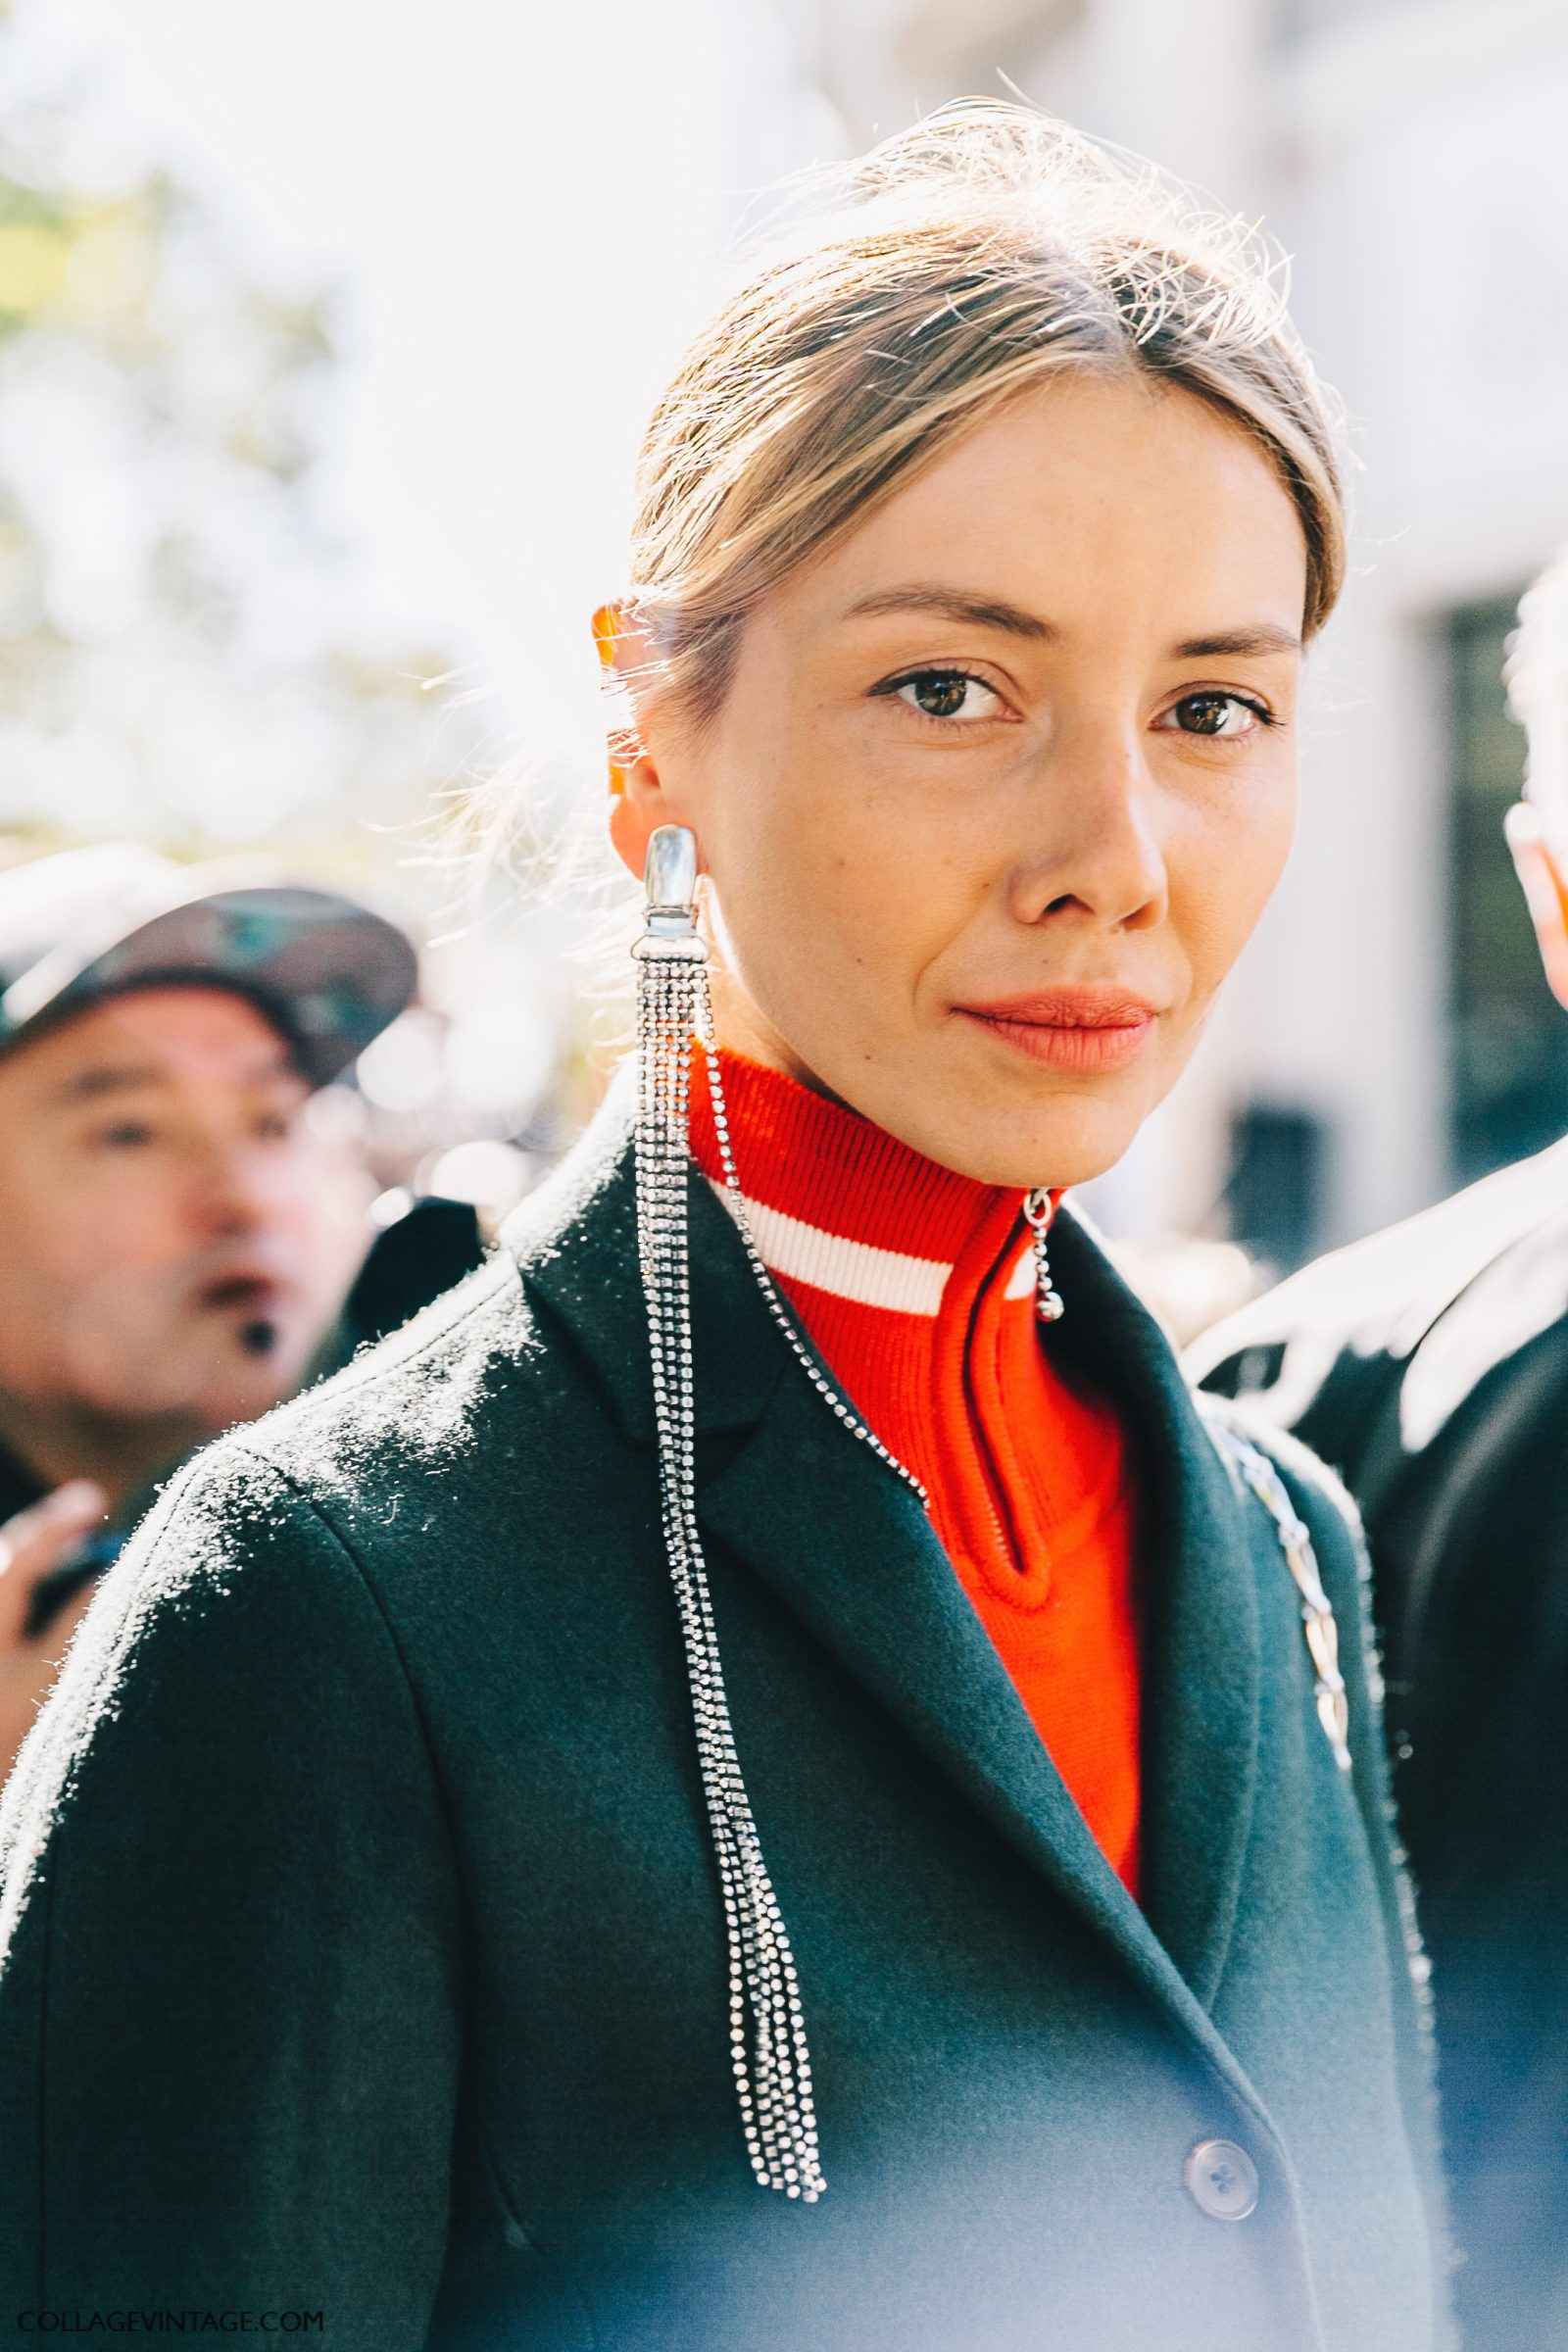 pfw-paris_fashion_week_ss17-street_style-outfit-collage_vintage-louis_vuitton-miu_miu-73